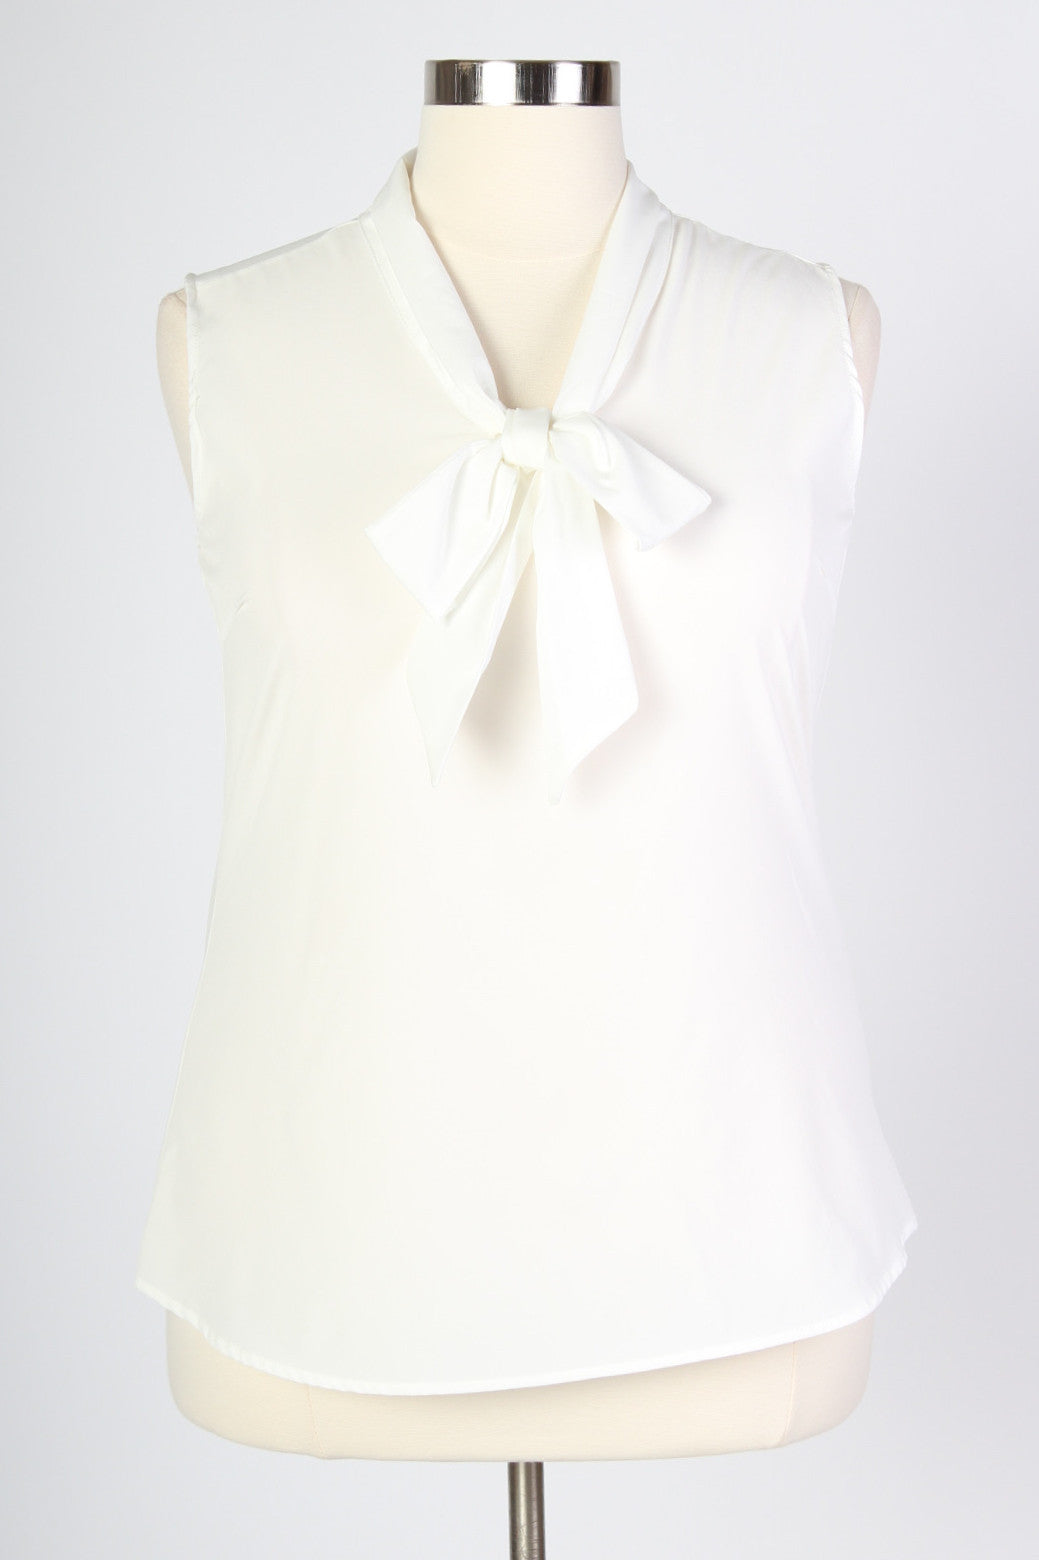 Made in USA Hand Wash Cold Do Not Bleach Hang Dry No Stretch Size Bust Arm Hole Waist Length 14 42